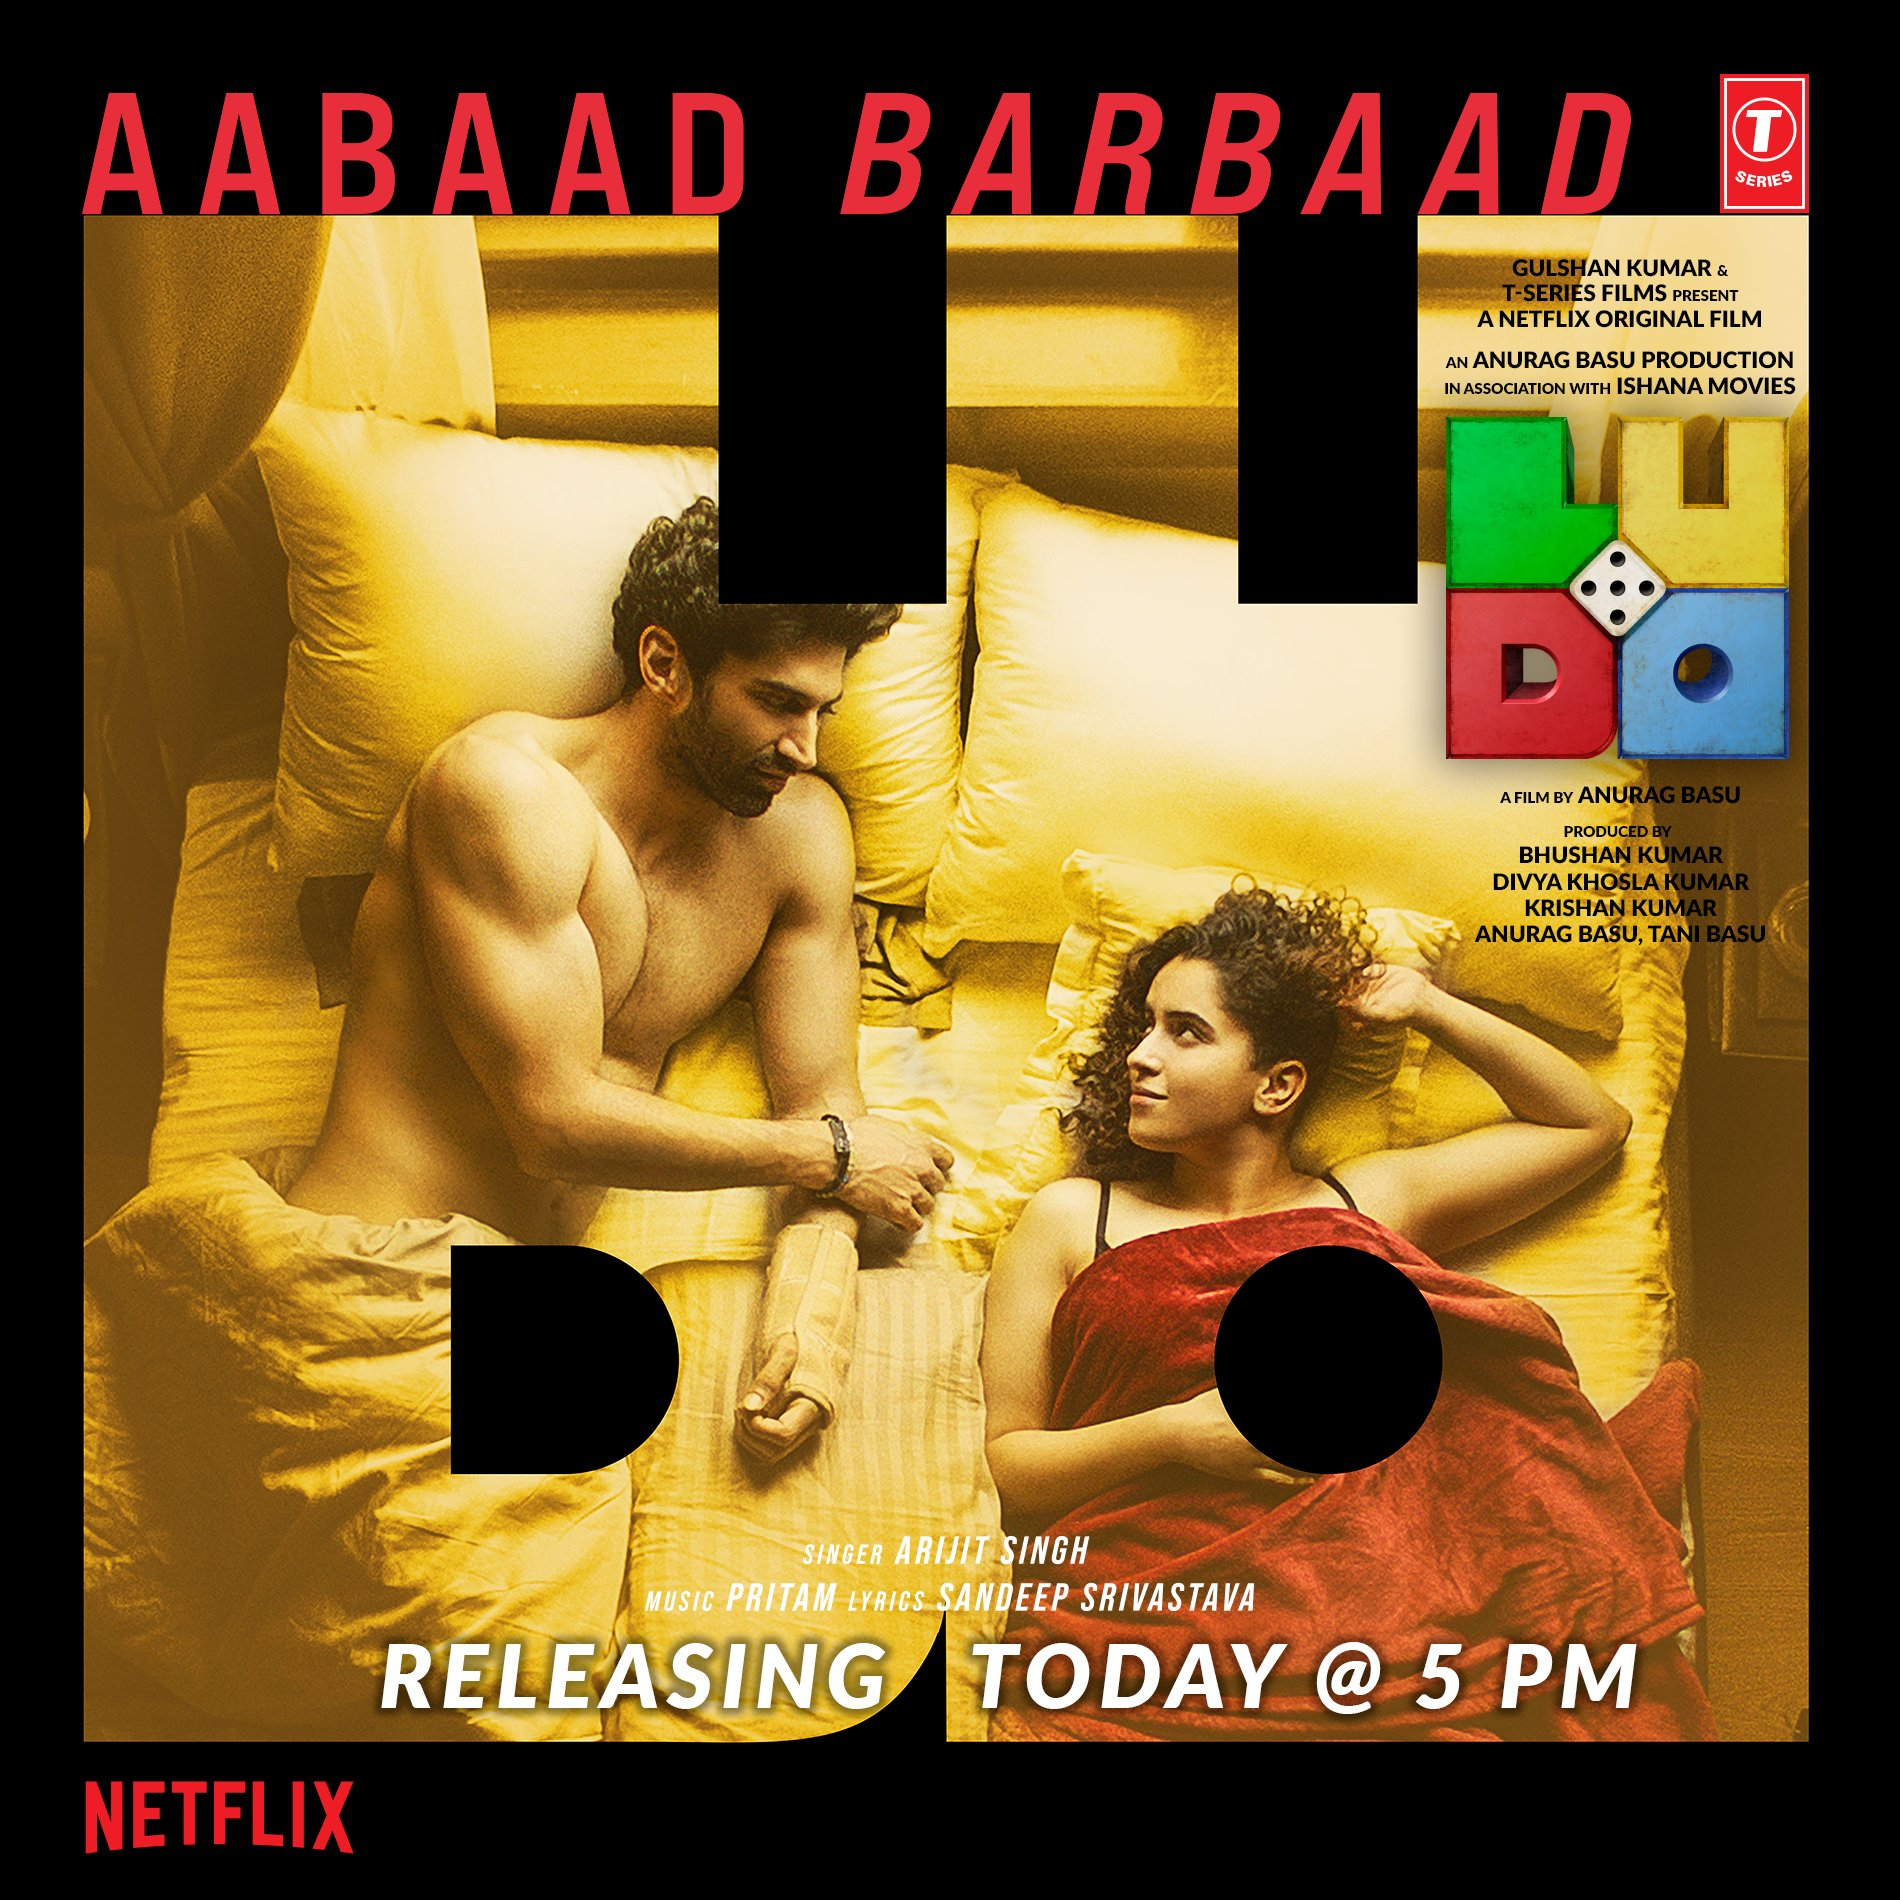 Aabaad Barbaad (Ludo 2020) By Arijit Singh Hindi Video Song 1080p HDRip Download